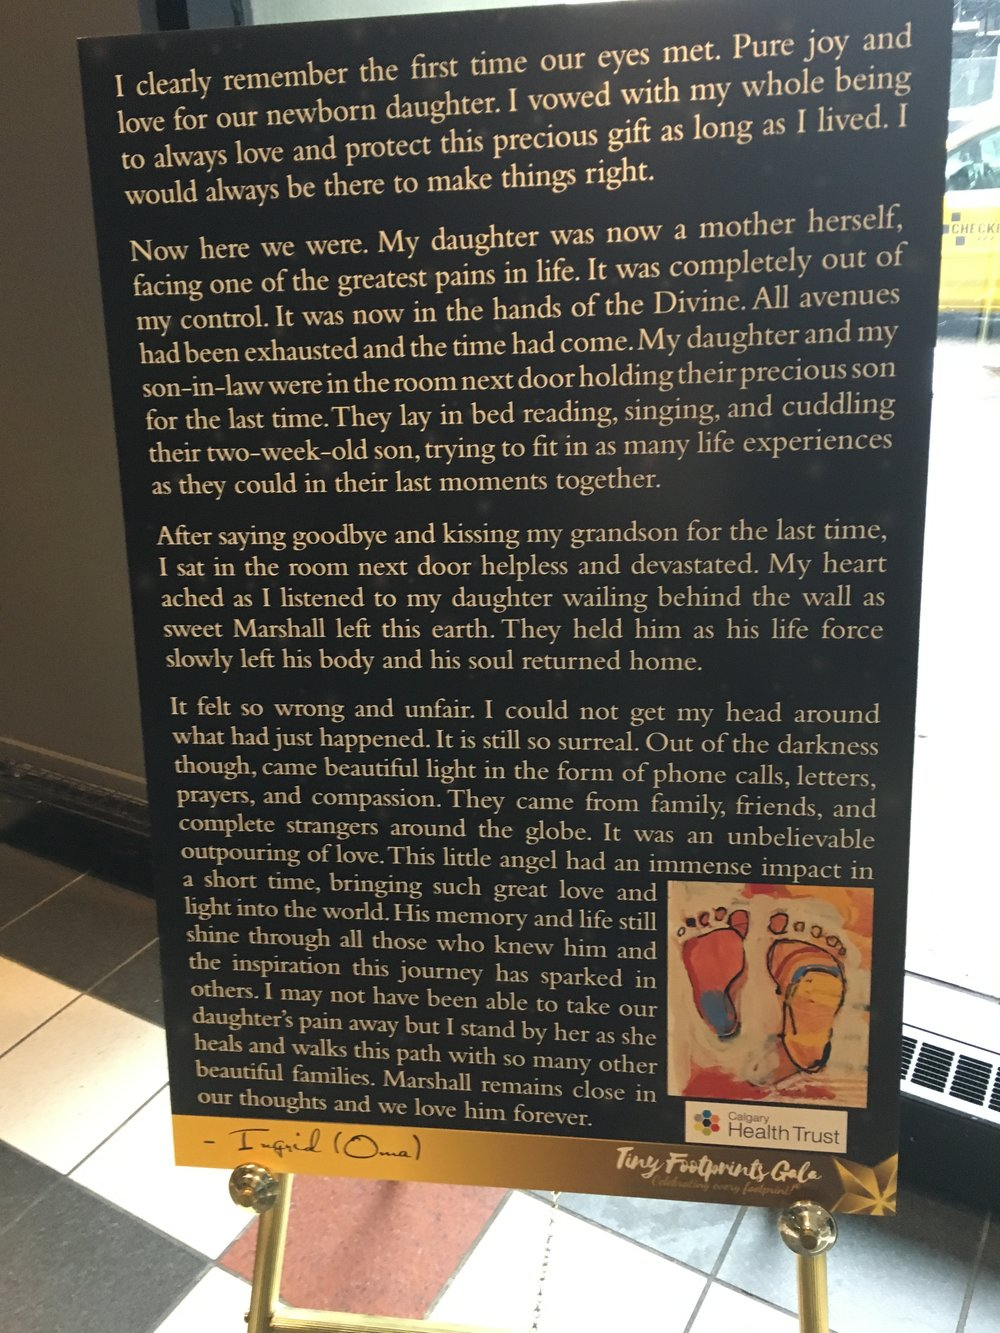 Oma's story displayed at the Tiny Footprints Gala 2018 in Calgary, Canada.